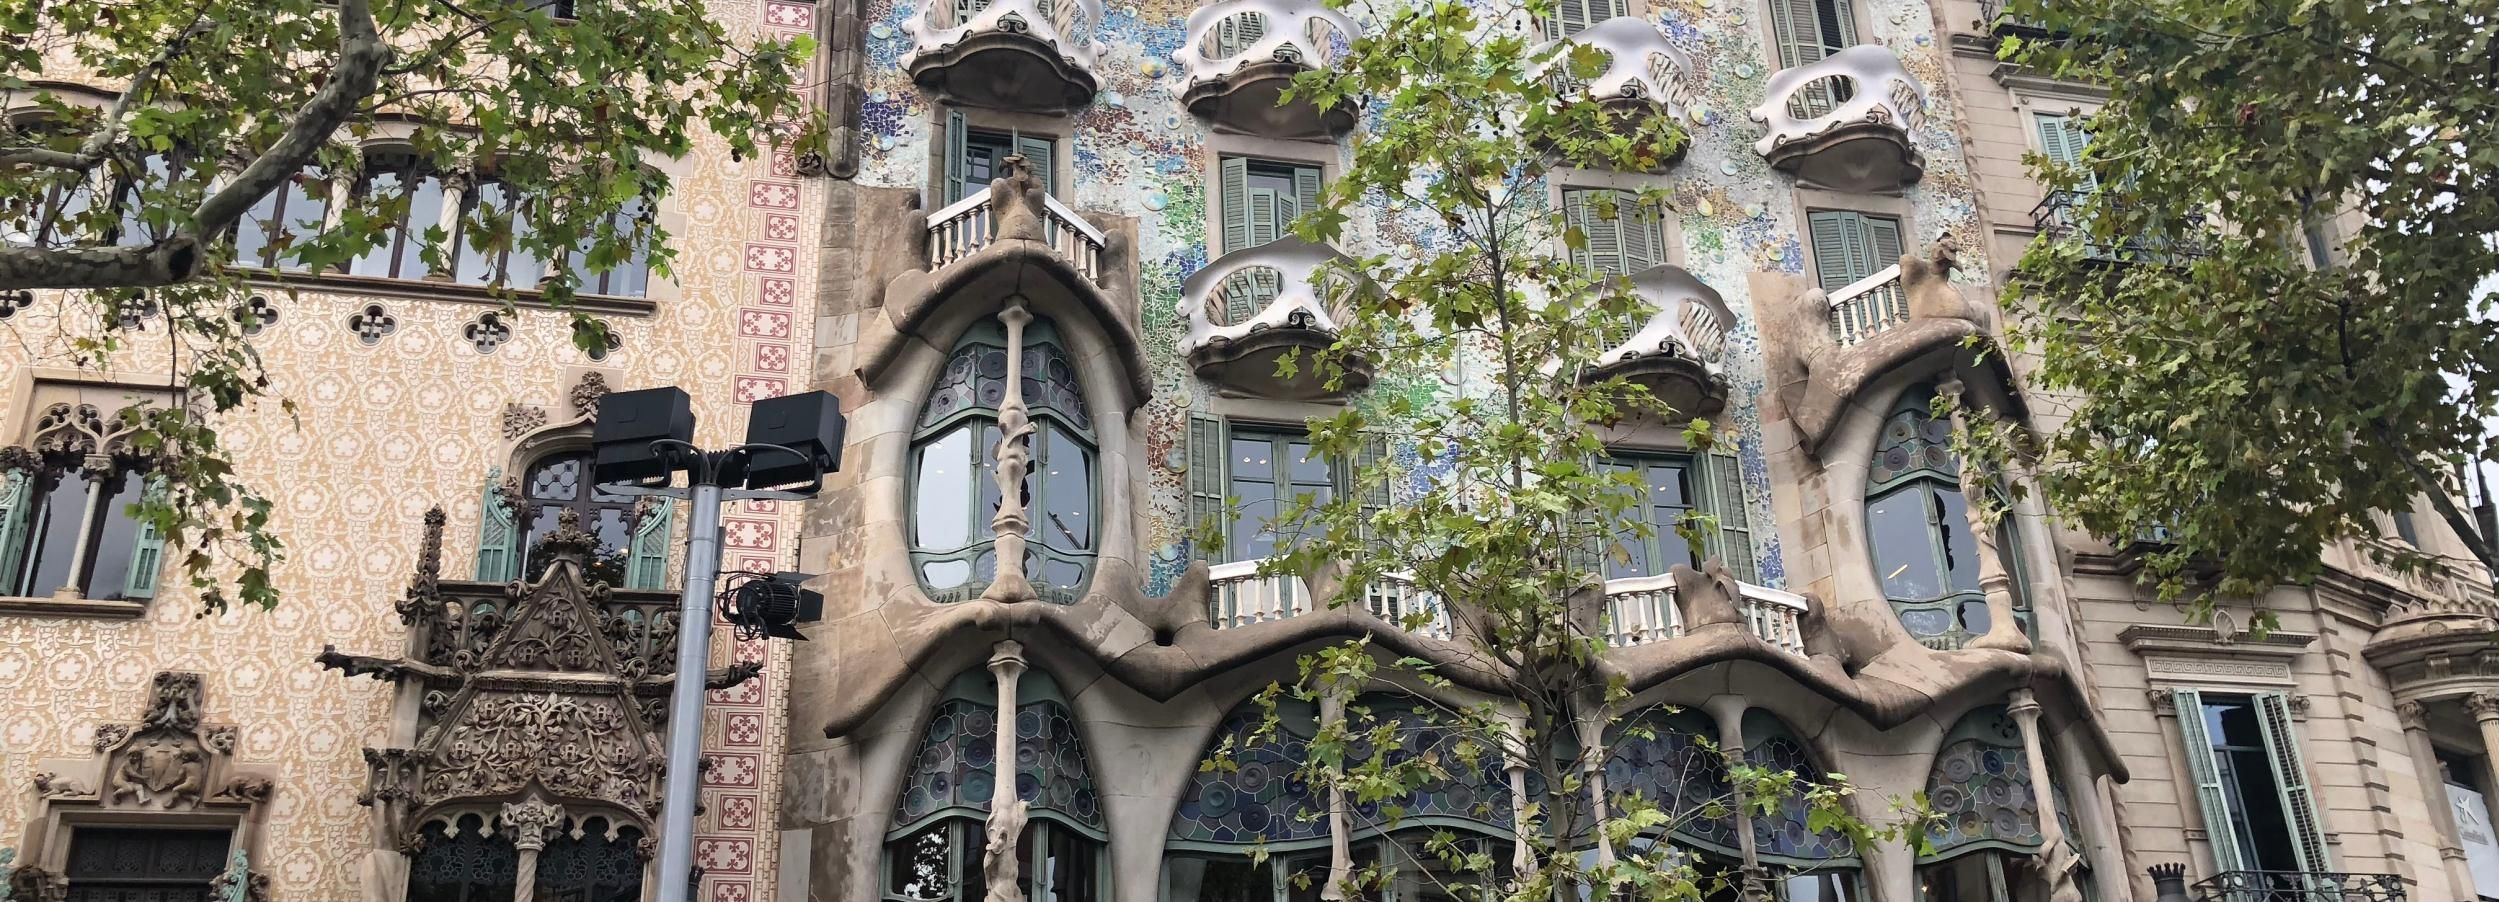 Barcelona: Day Tour with Sagrada Familia and Park Güell